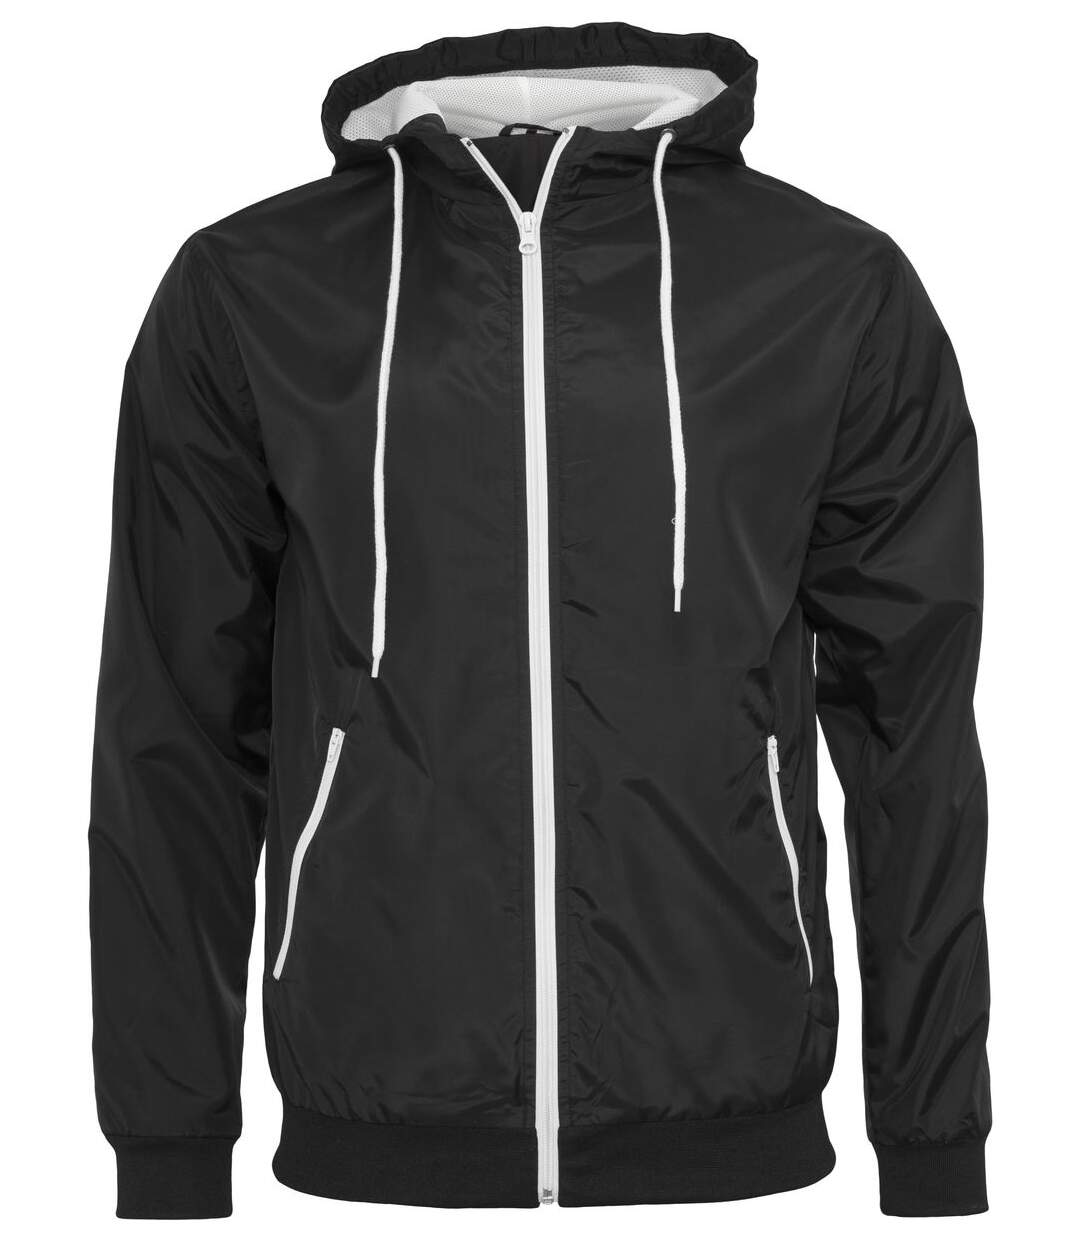 Coupe-vent style bomber - homme - BY016 - noir et blanc